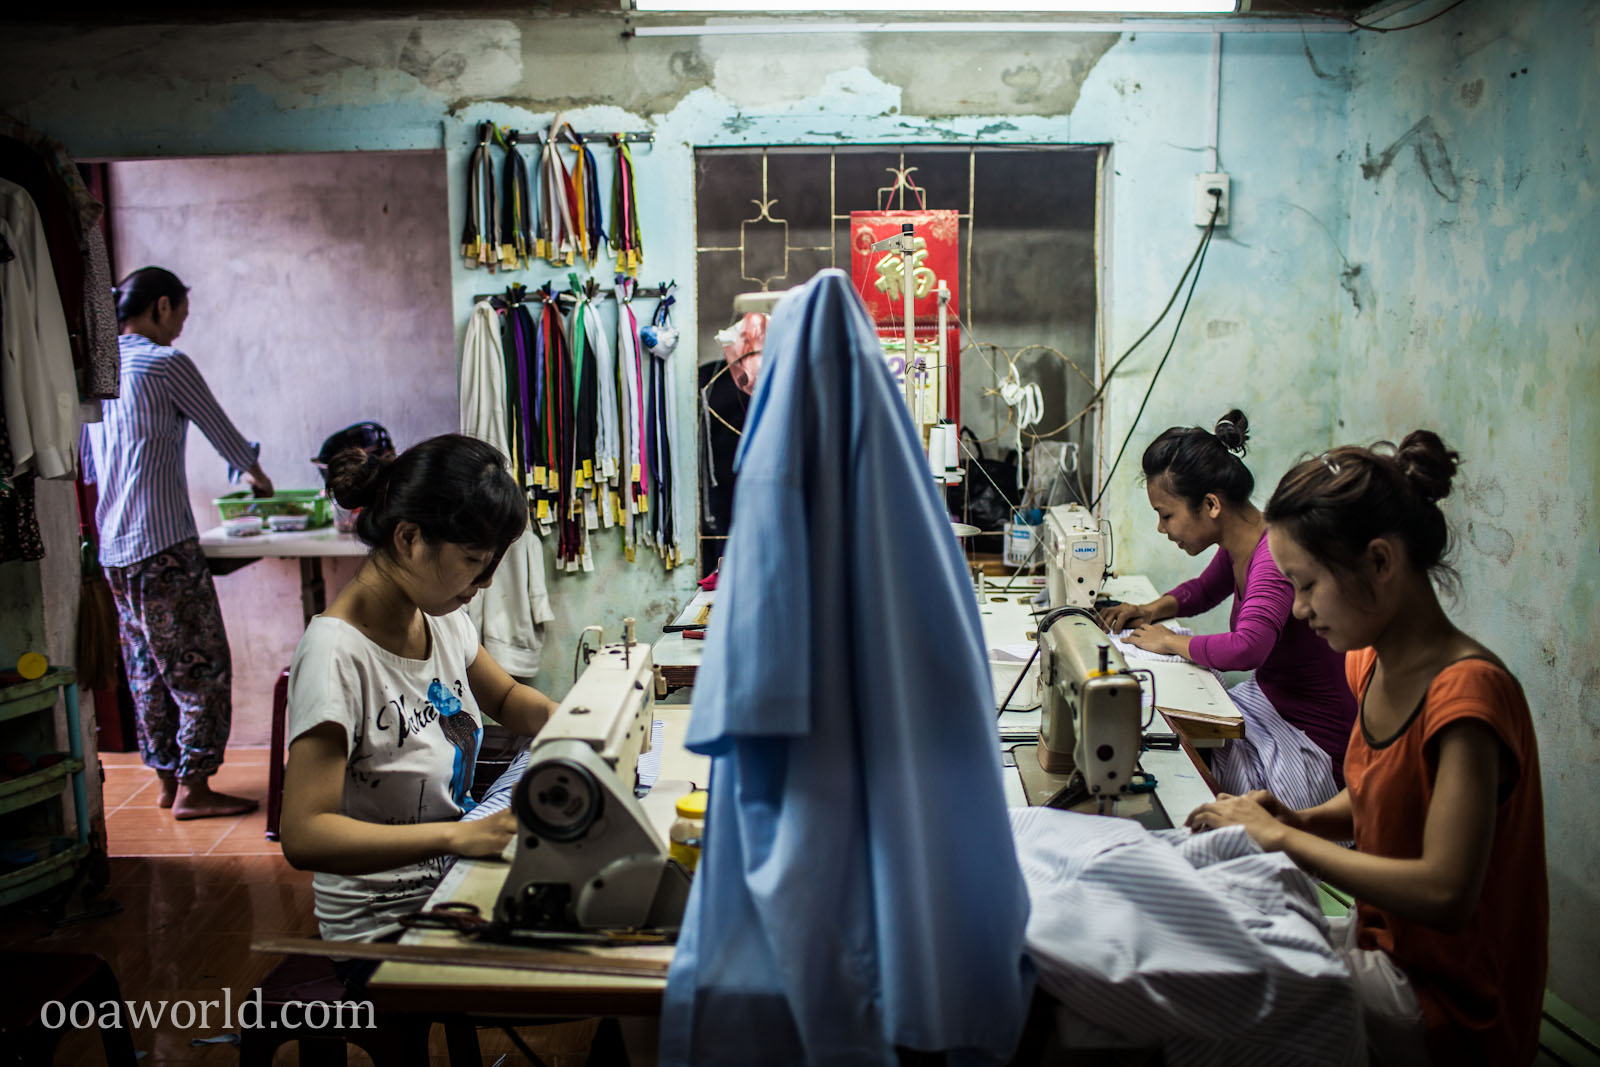 Hoi An Seamstresses Photo Ooaworld